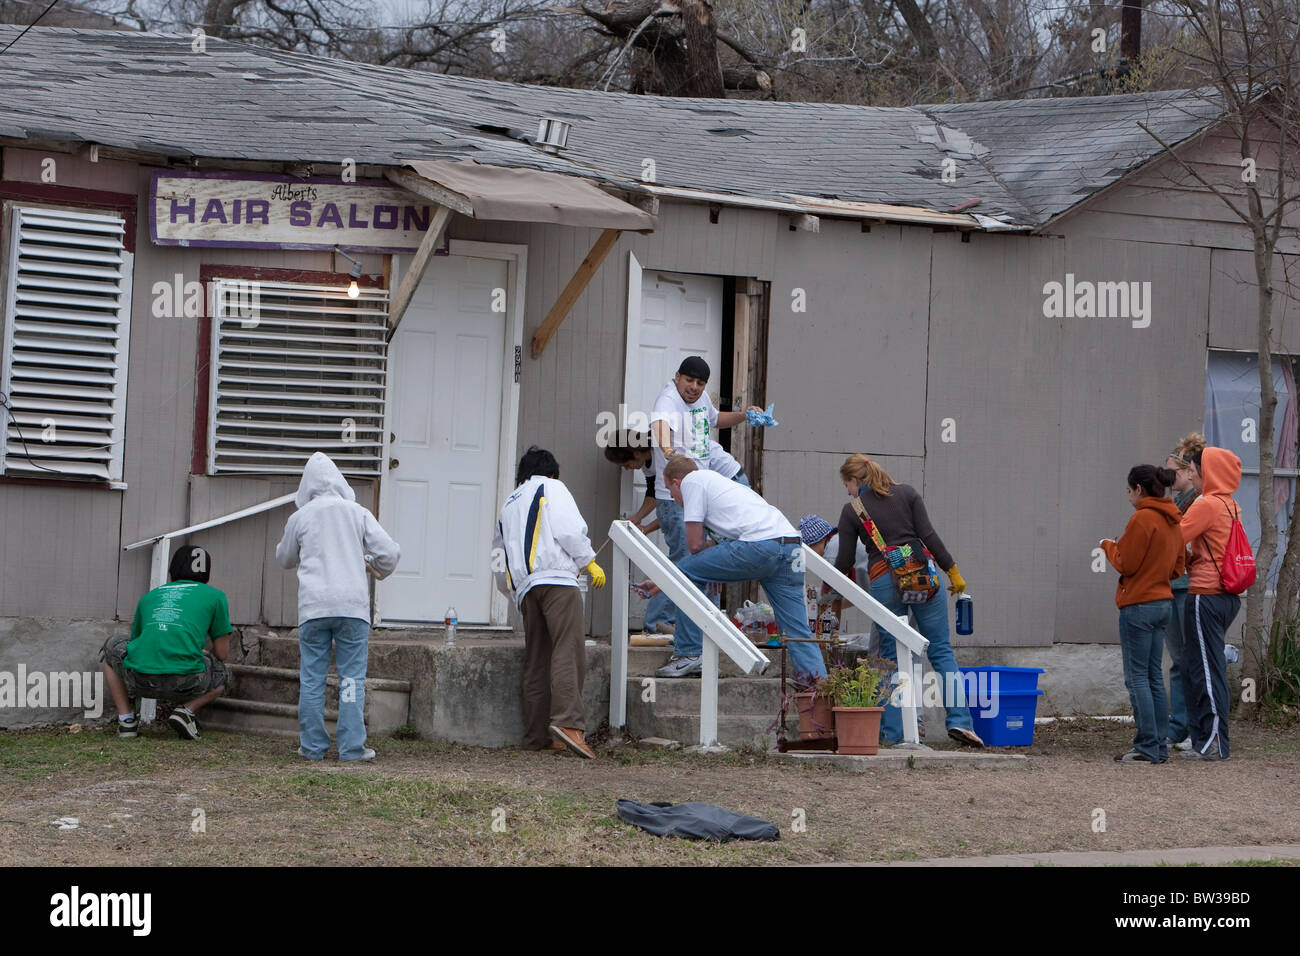 College students belonging to Filipino-American campus group paint a run-down house in a low-income neighborhood - Stock Image